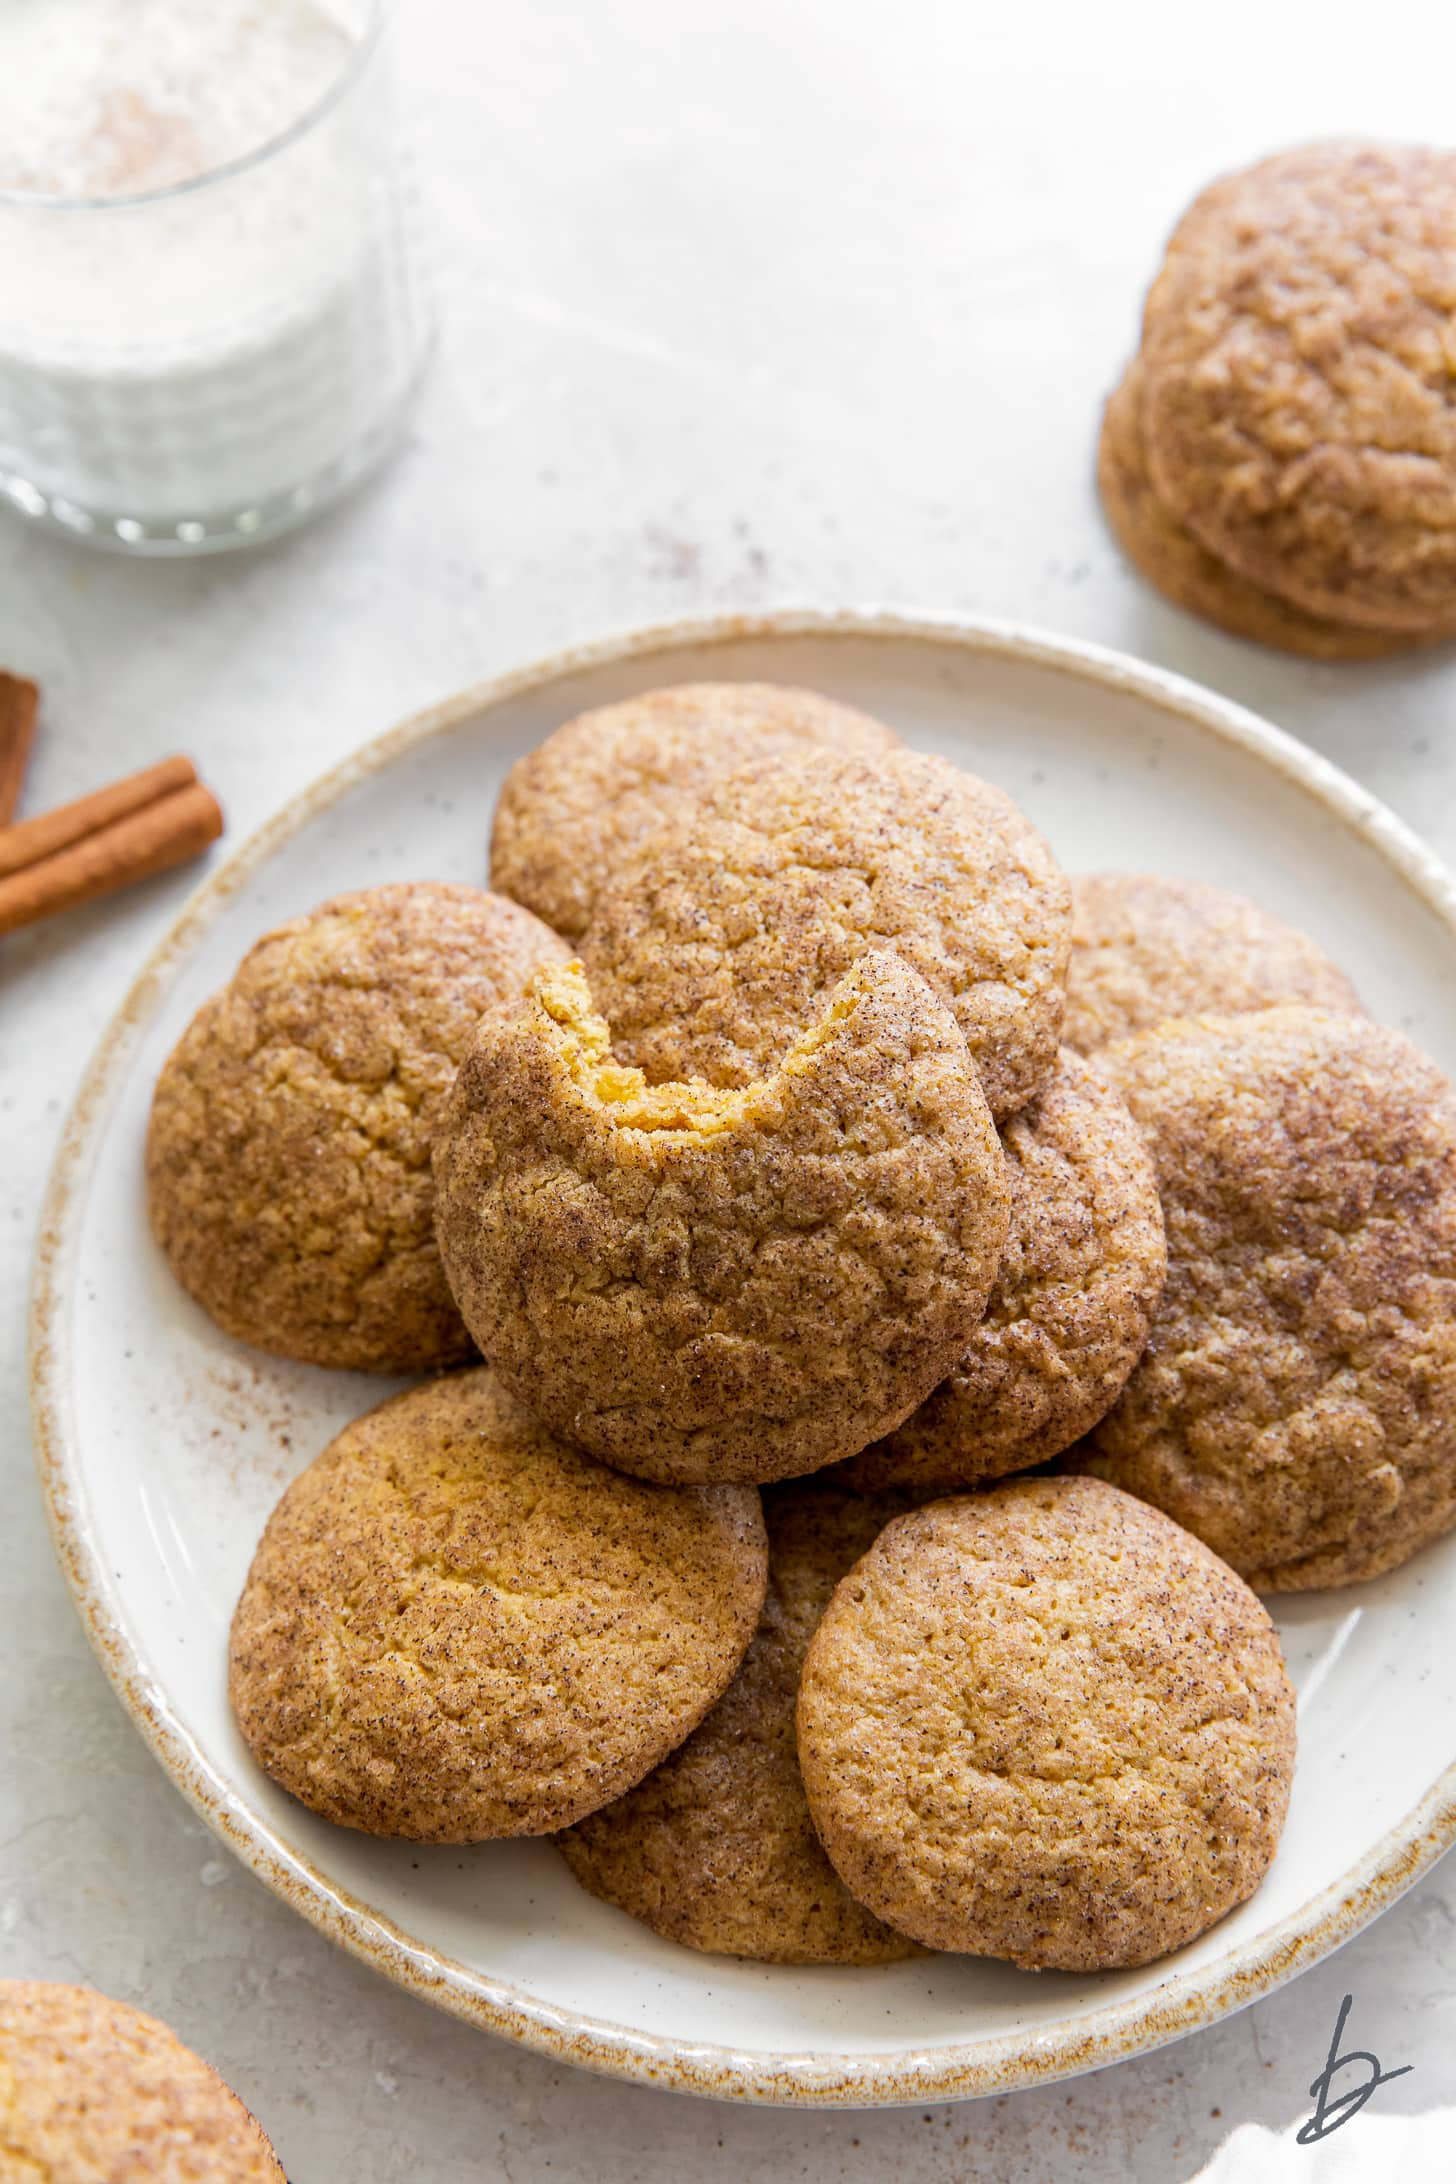 pumpkin snickerdoodles on wire cooling rack and cinnamon sticks